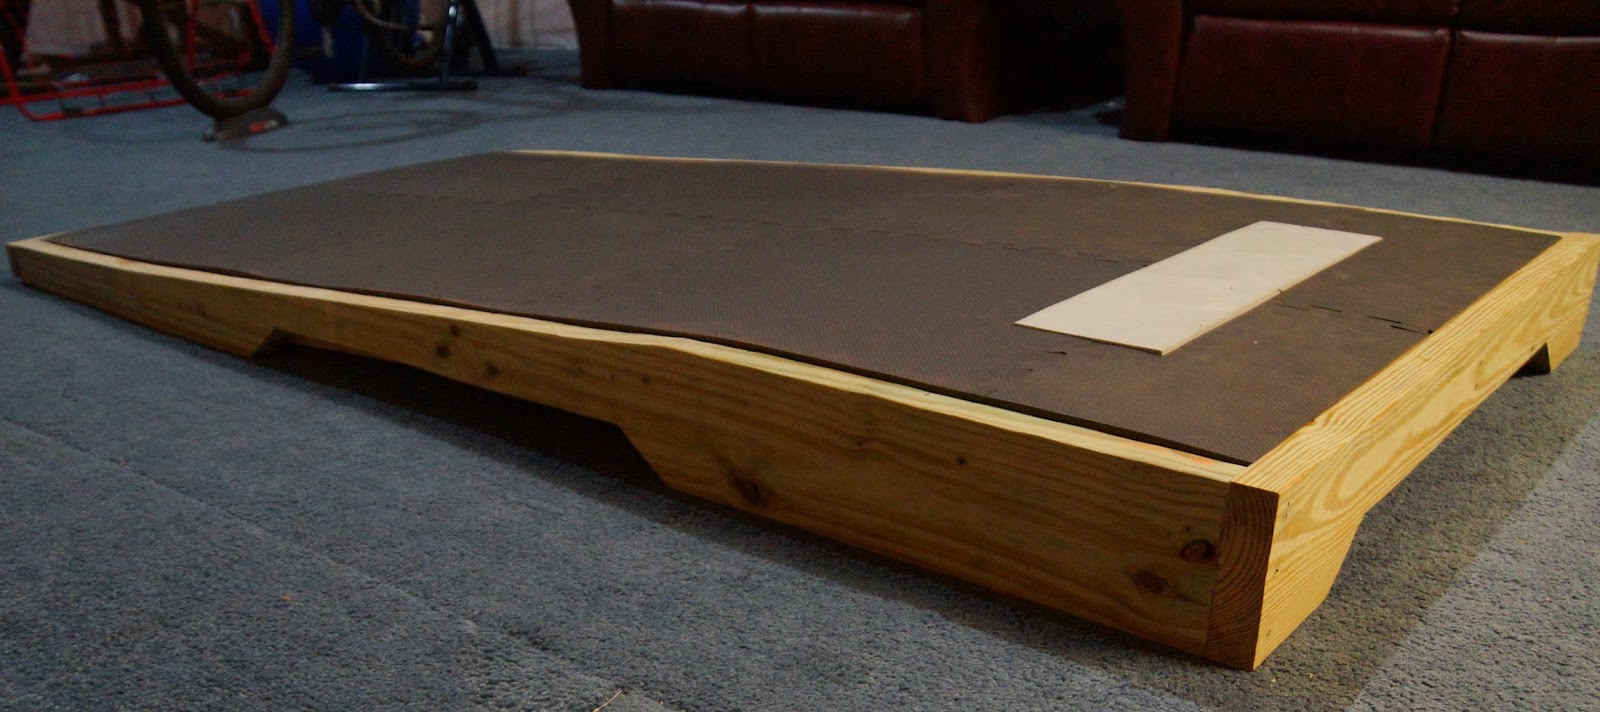 Portable Pitching Mound Dimensions >> Engineer by Day: DIY Pitching Mound